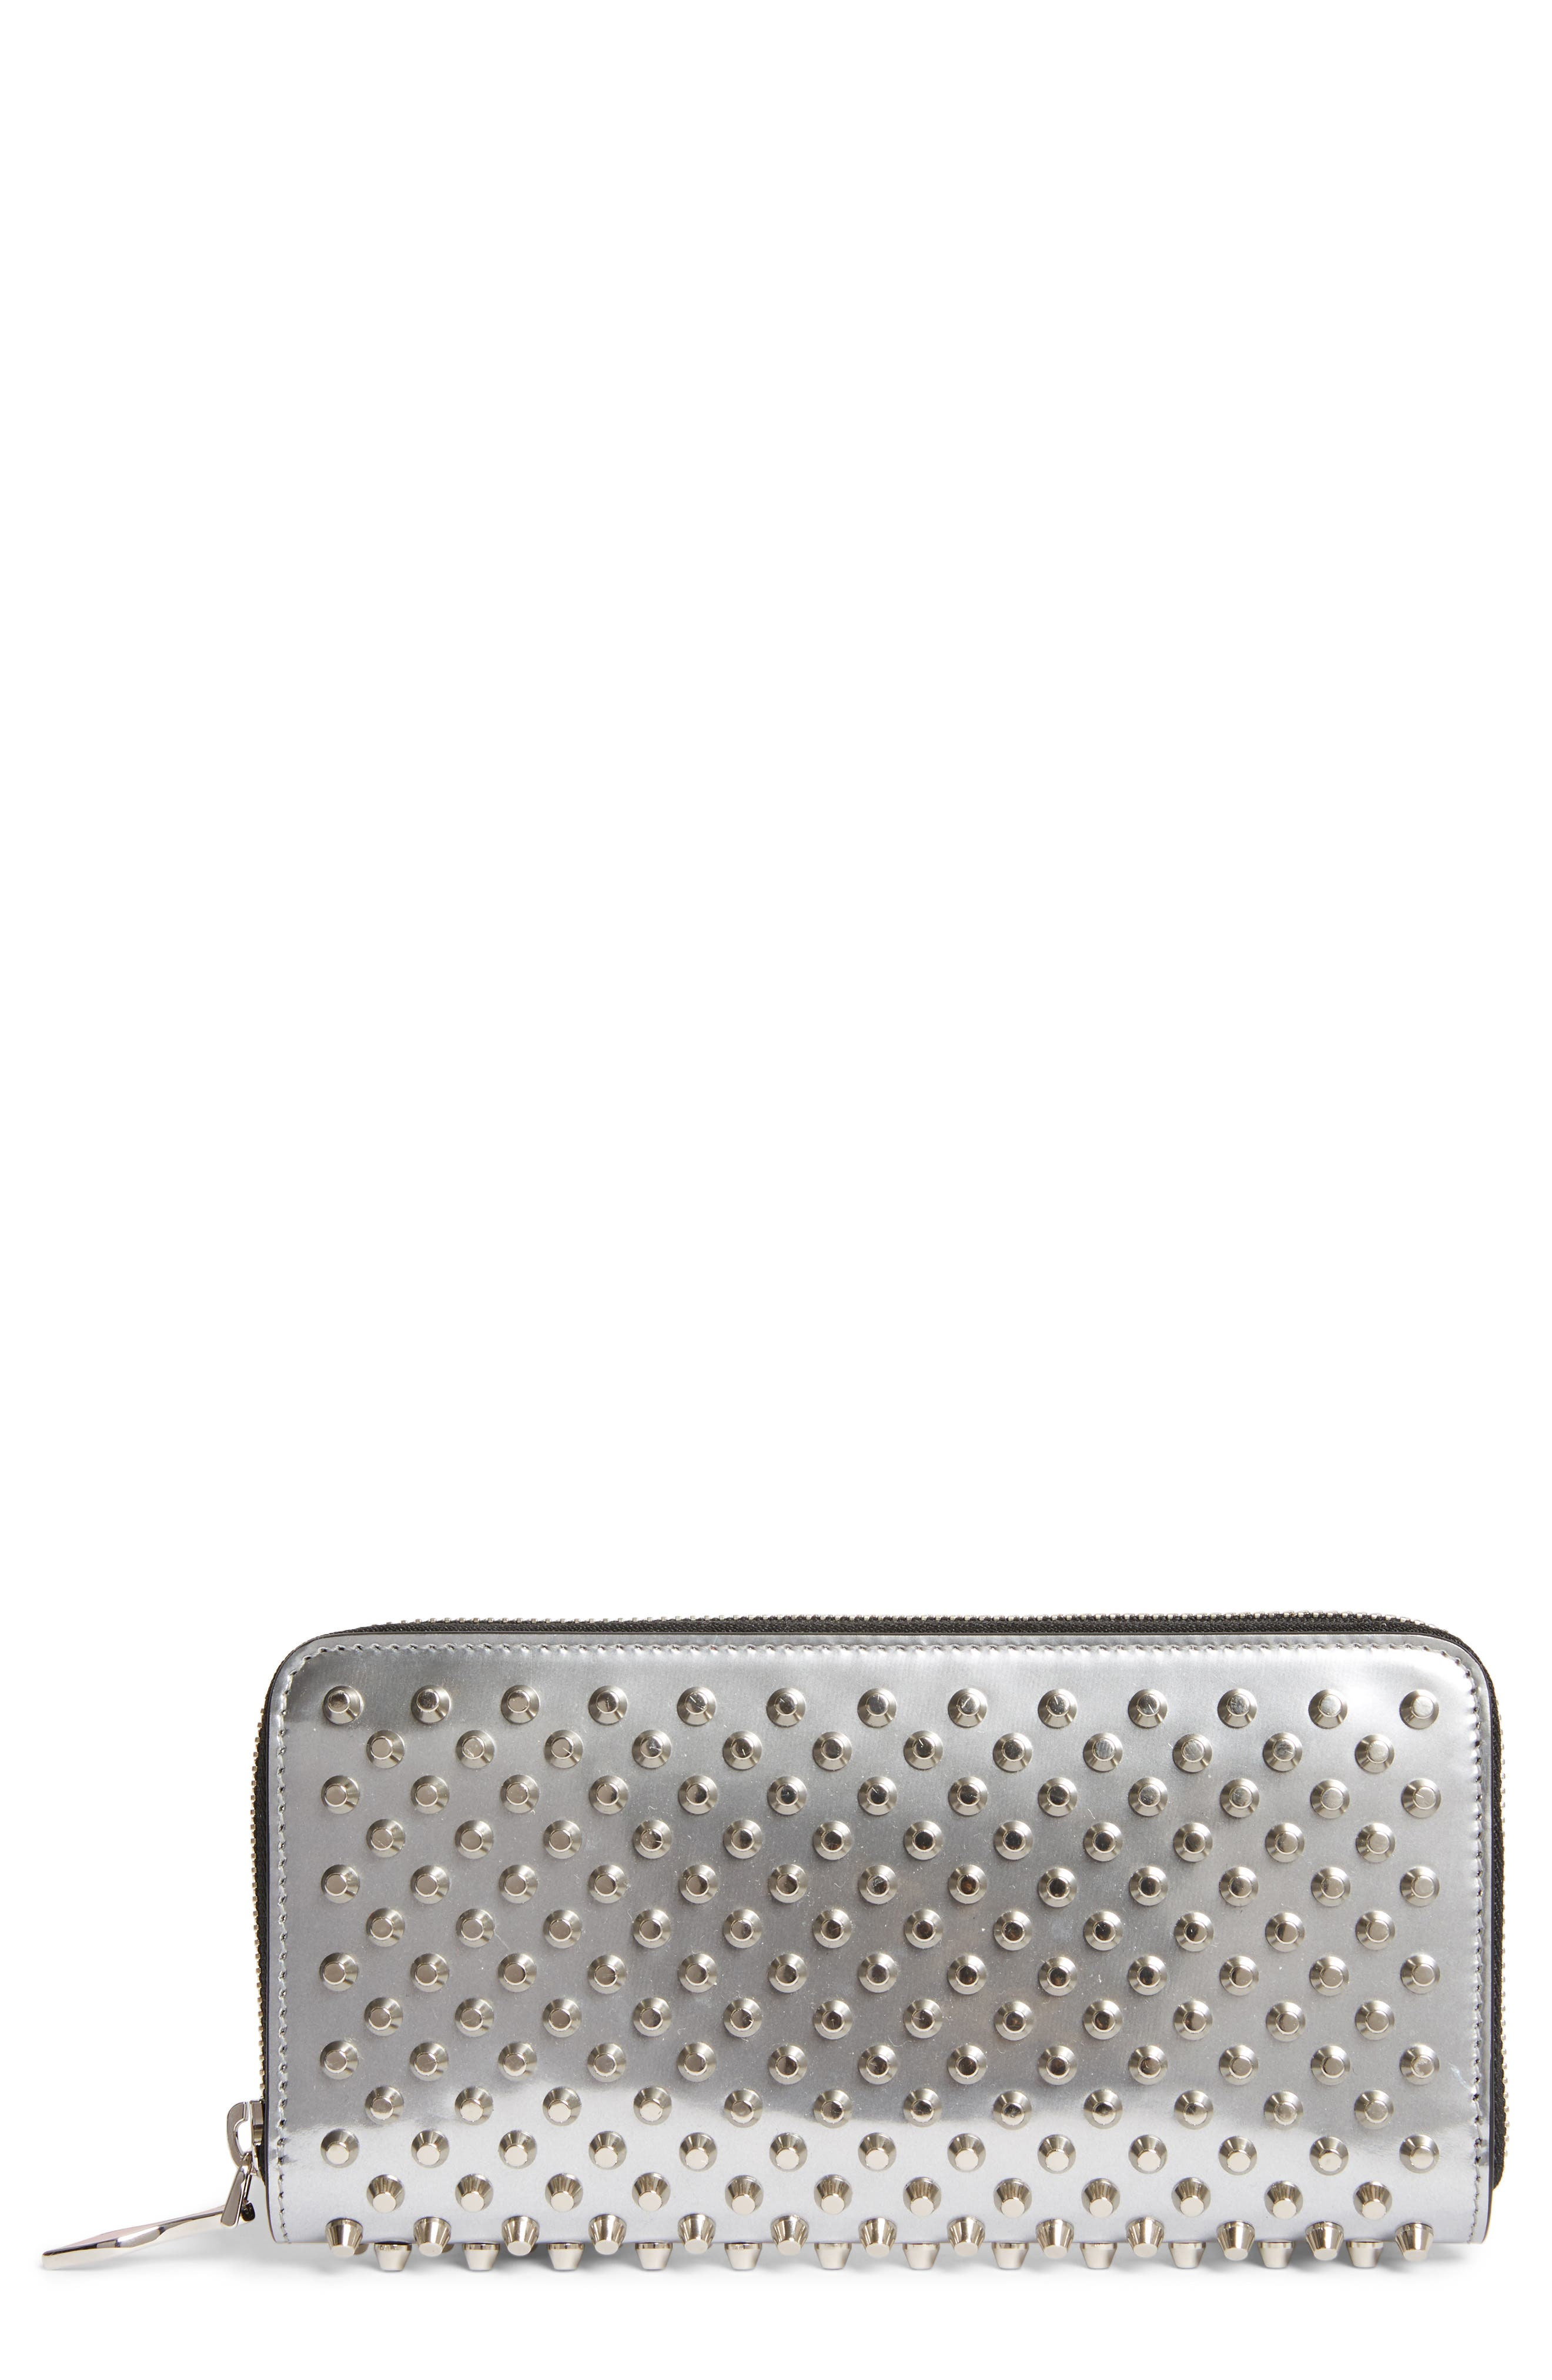 Alternate Image 1 Selected - Christian Louboutin Panettone Spiked Metallic Leather Wallet